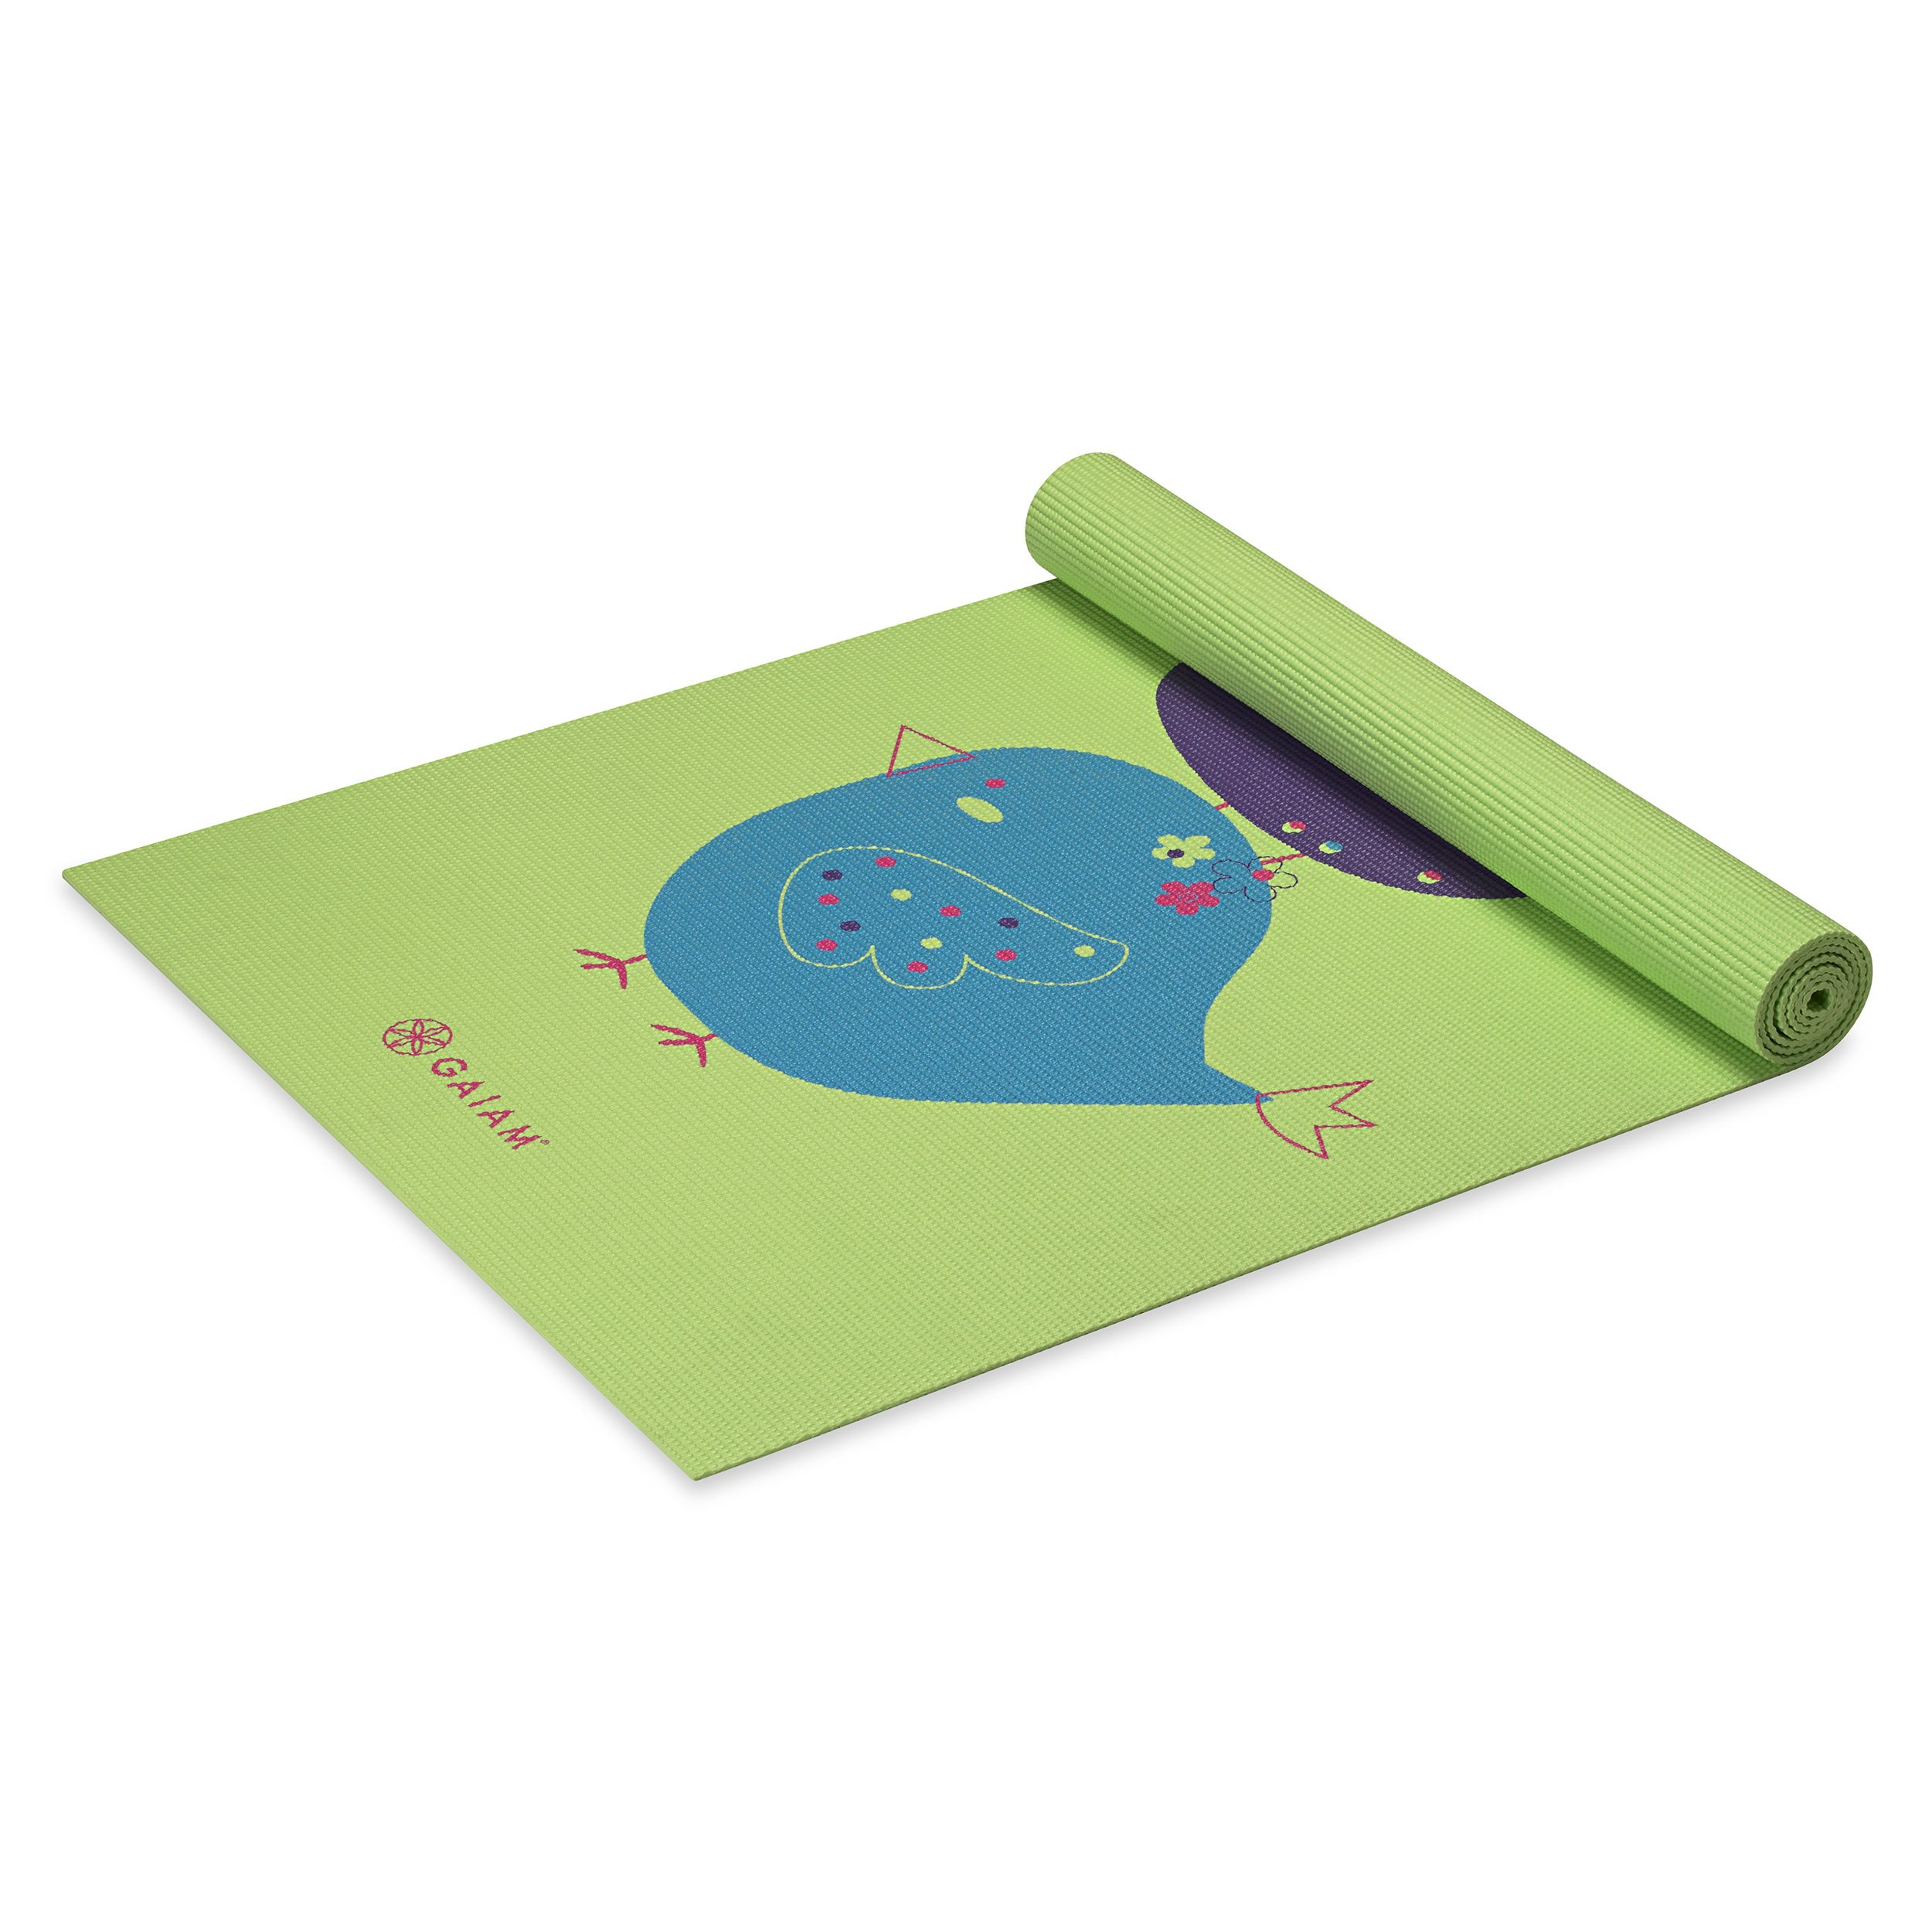 Good Workout Mat: Kids Yoga: Amazon.com